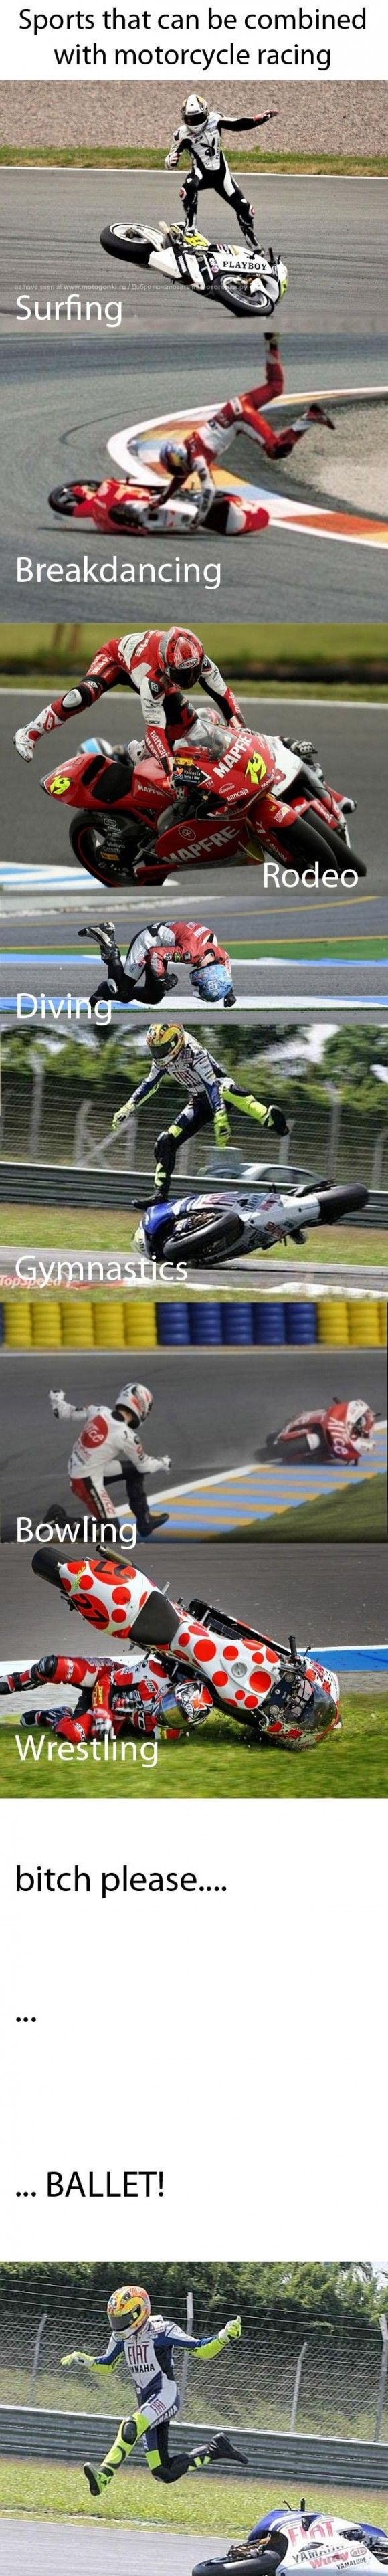 Moto gp ftw: Motorcycles, Bike, Sports, Funny Stuff, Funnies, Humor